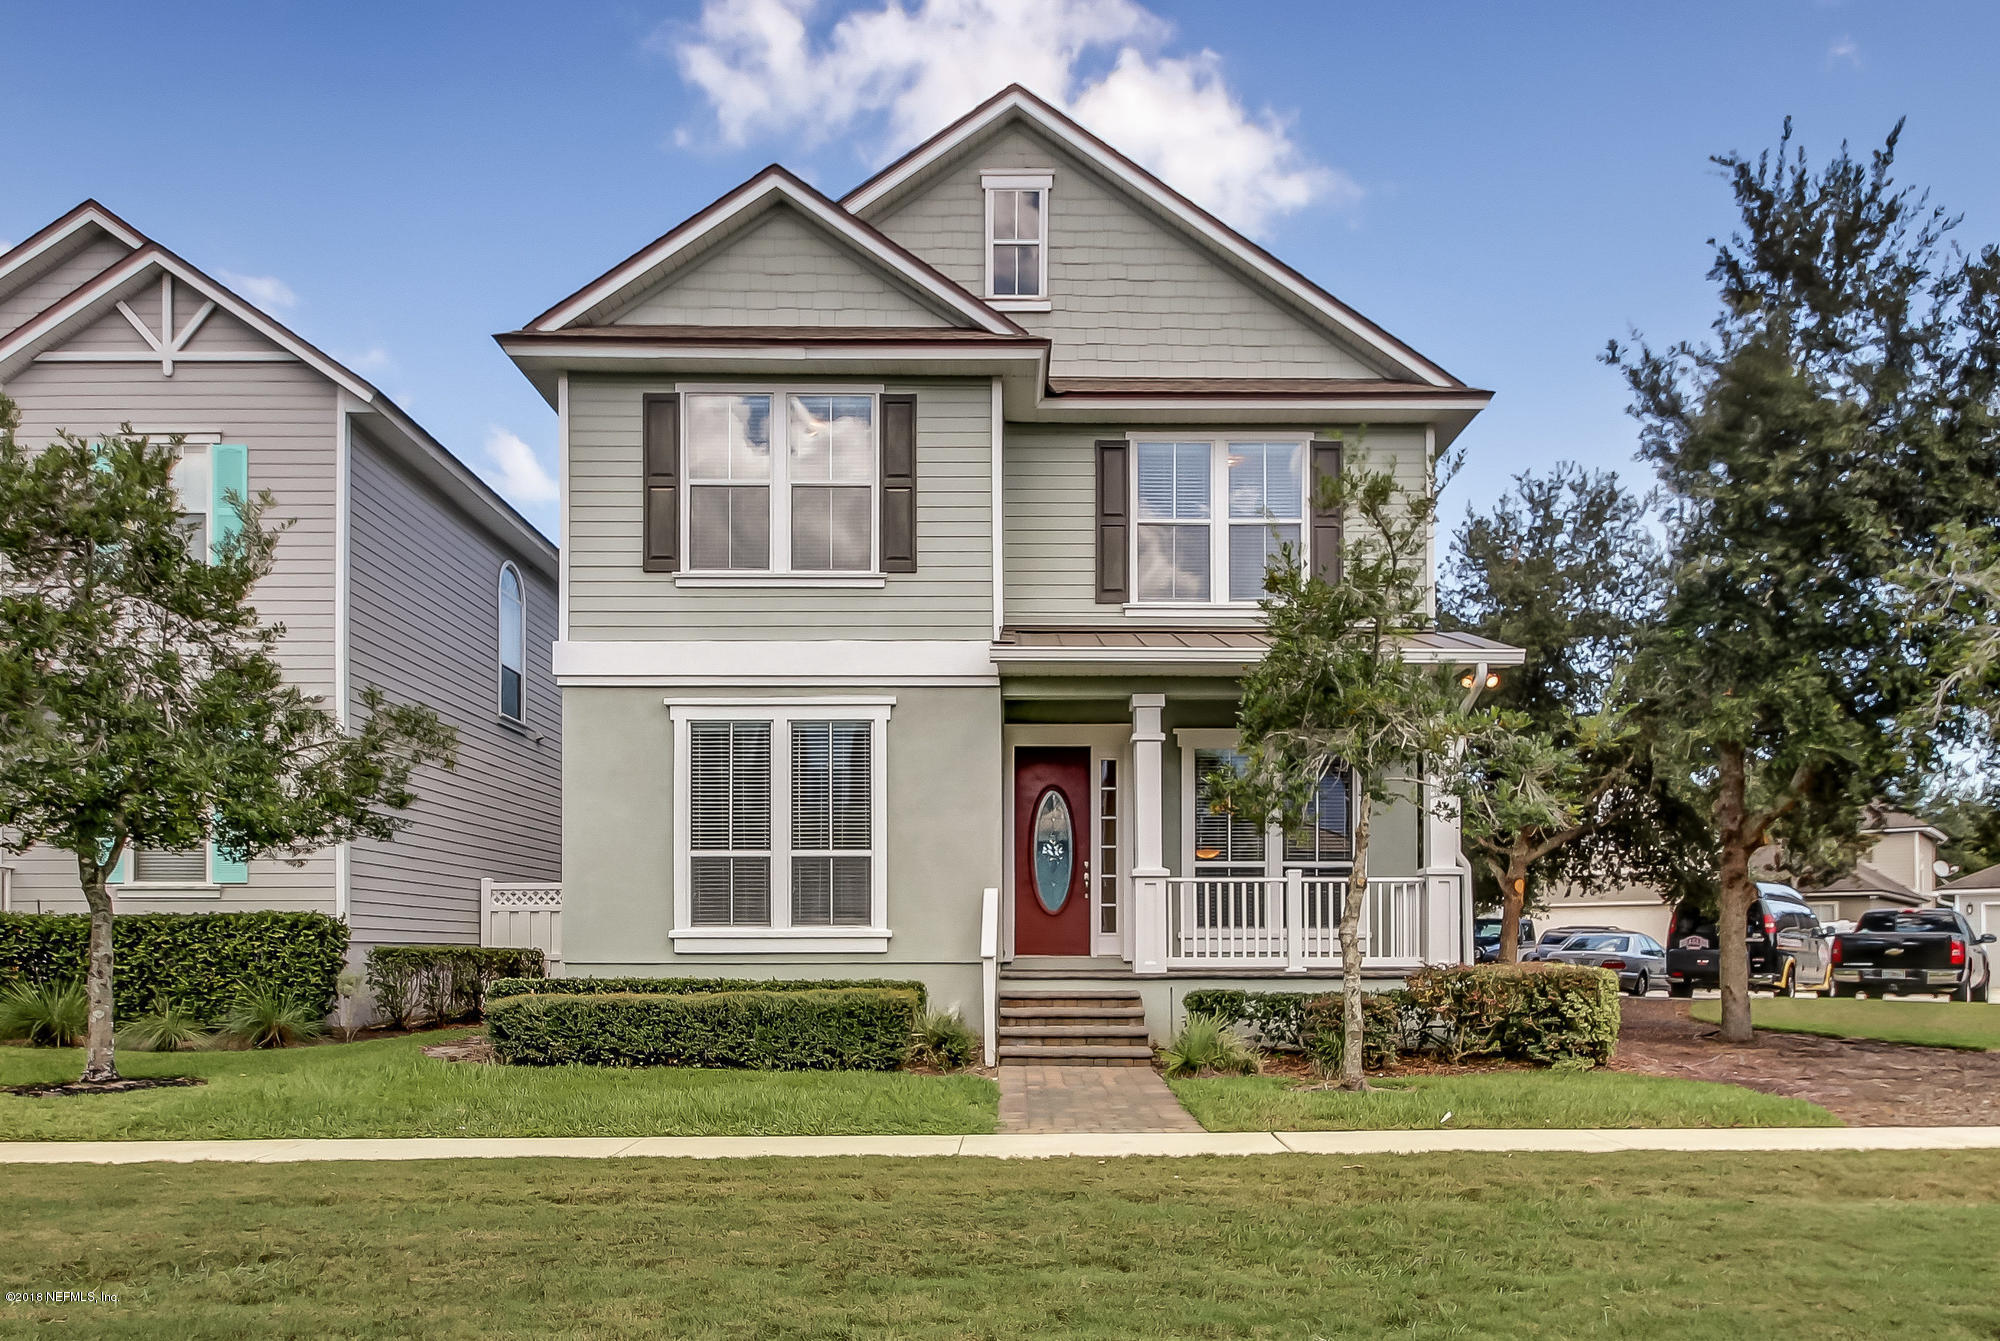 424 CENTRAL, ST AUGUSTINE, FLORIDA 32095, 4 Bedrooms Bedrooms, ,2 BathroomsBathrooms,Residential - single family,For sale,CENTRAL,960157